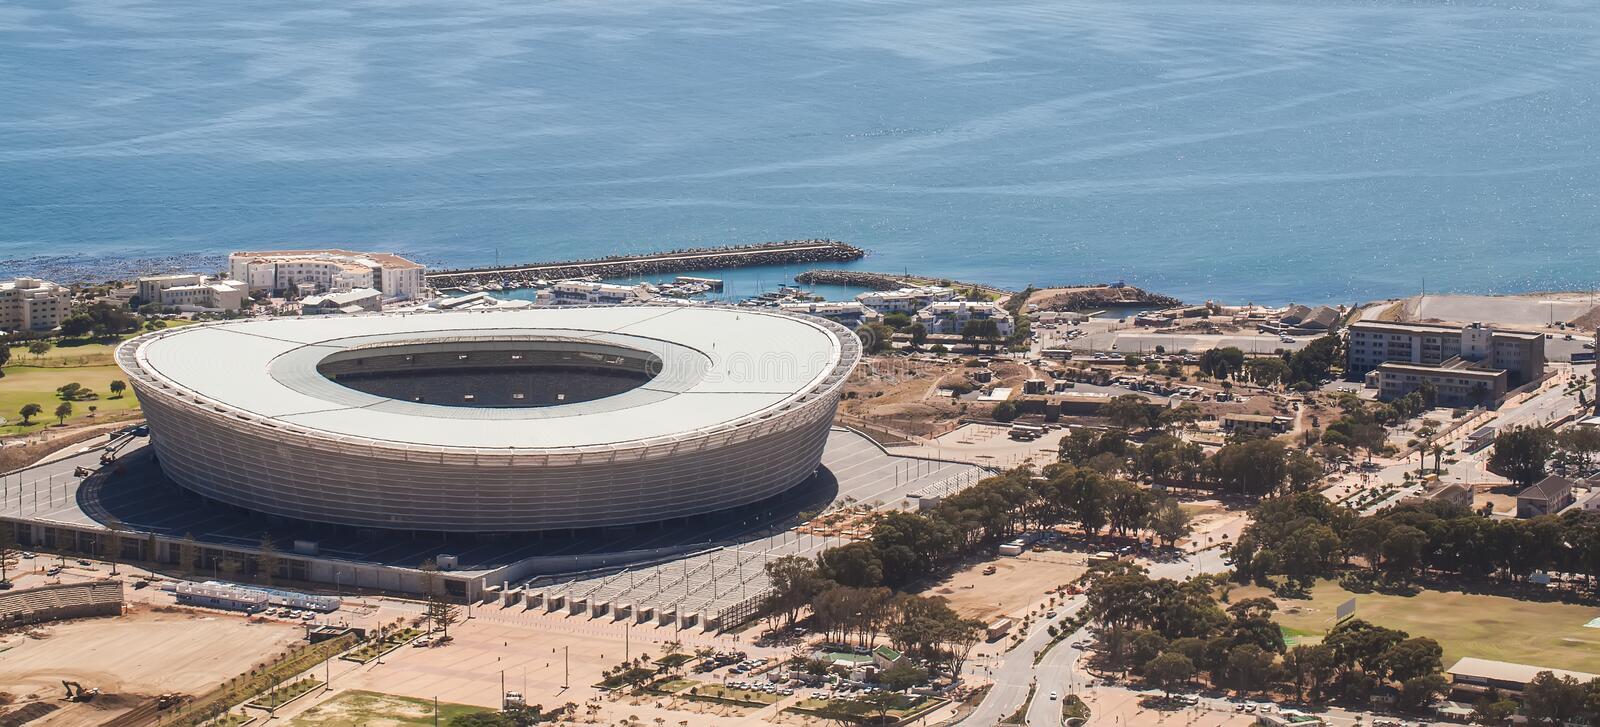 Stade de Capetown photos stock